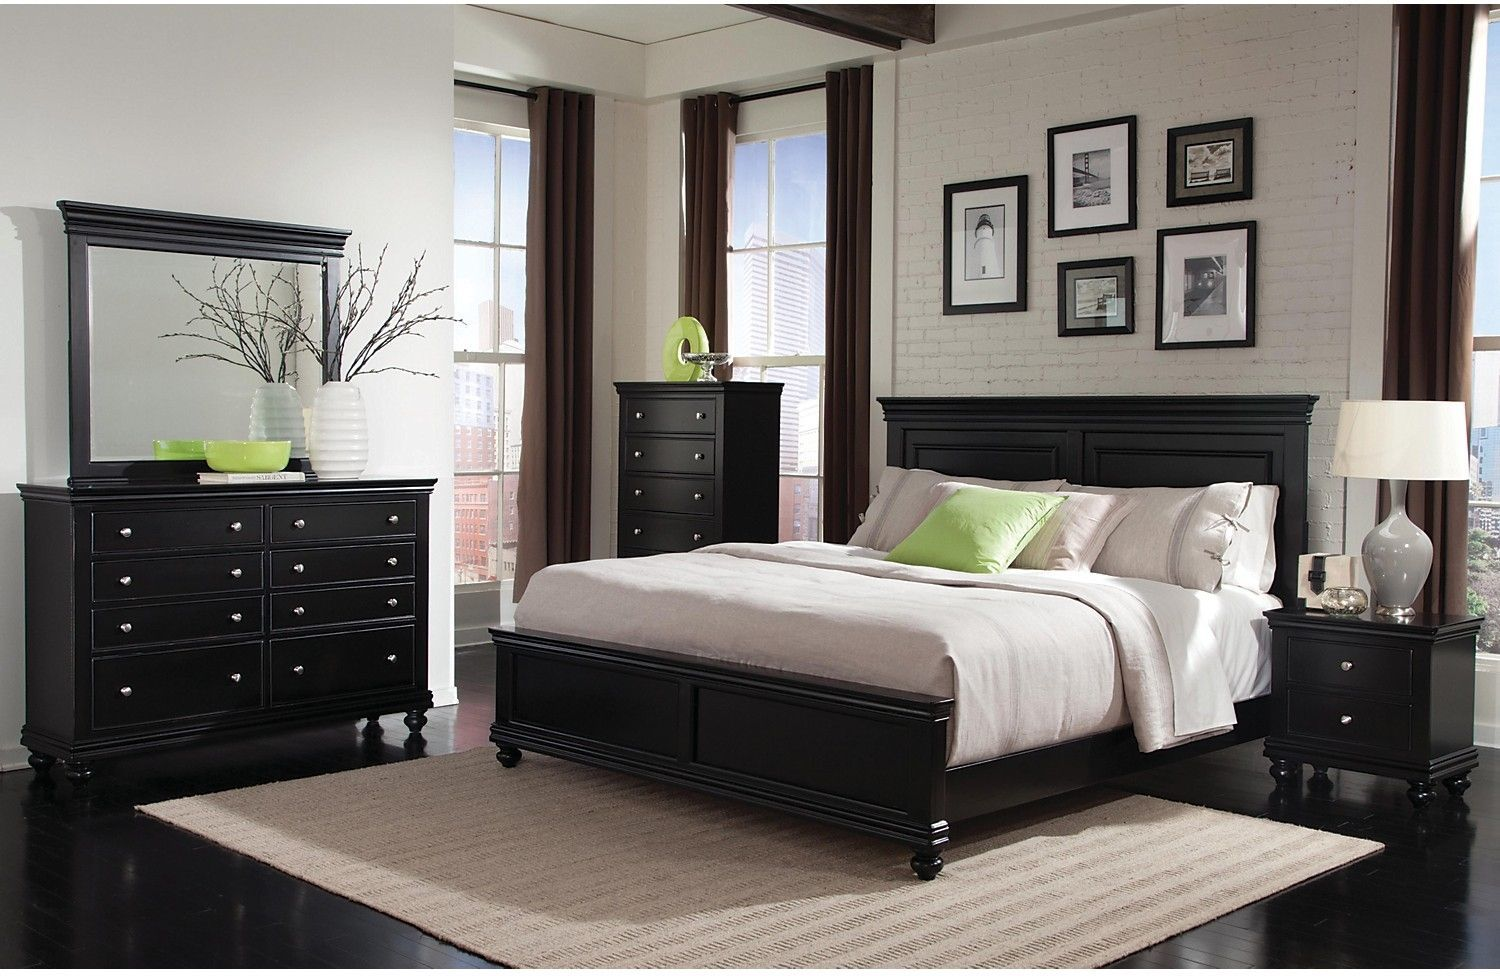 Bridgeport 7-Piece King Bedroom Set - Black | decor | Cool bedroom ...